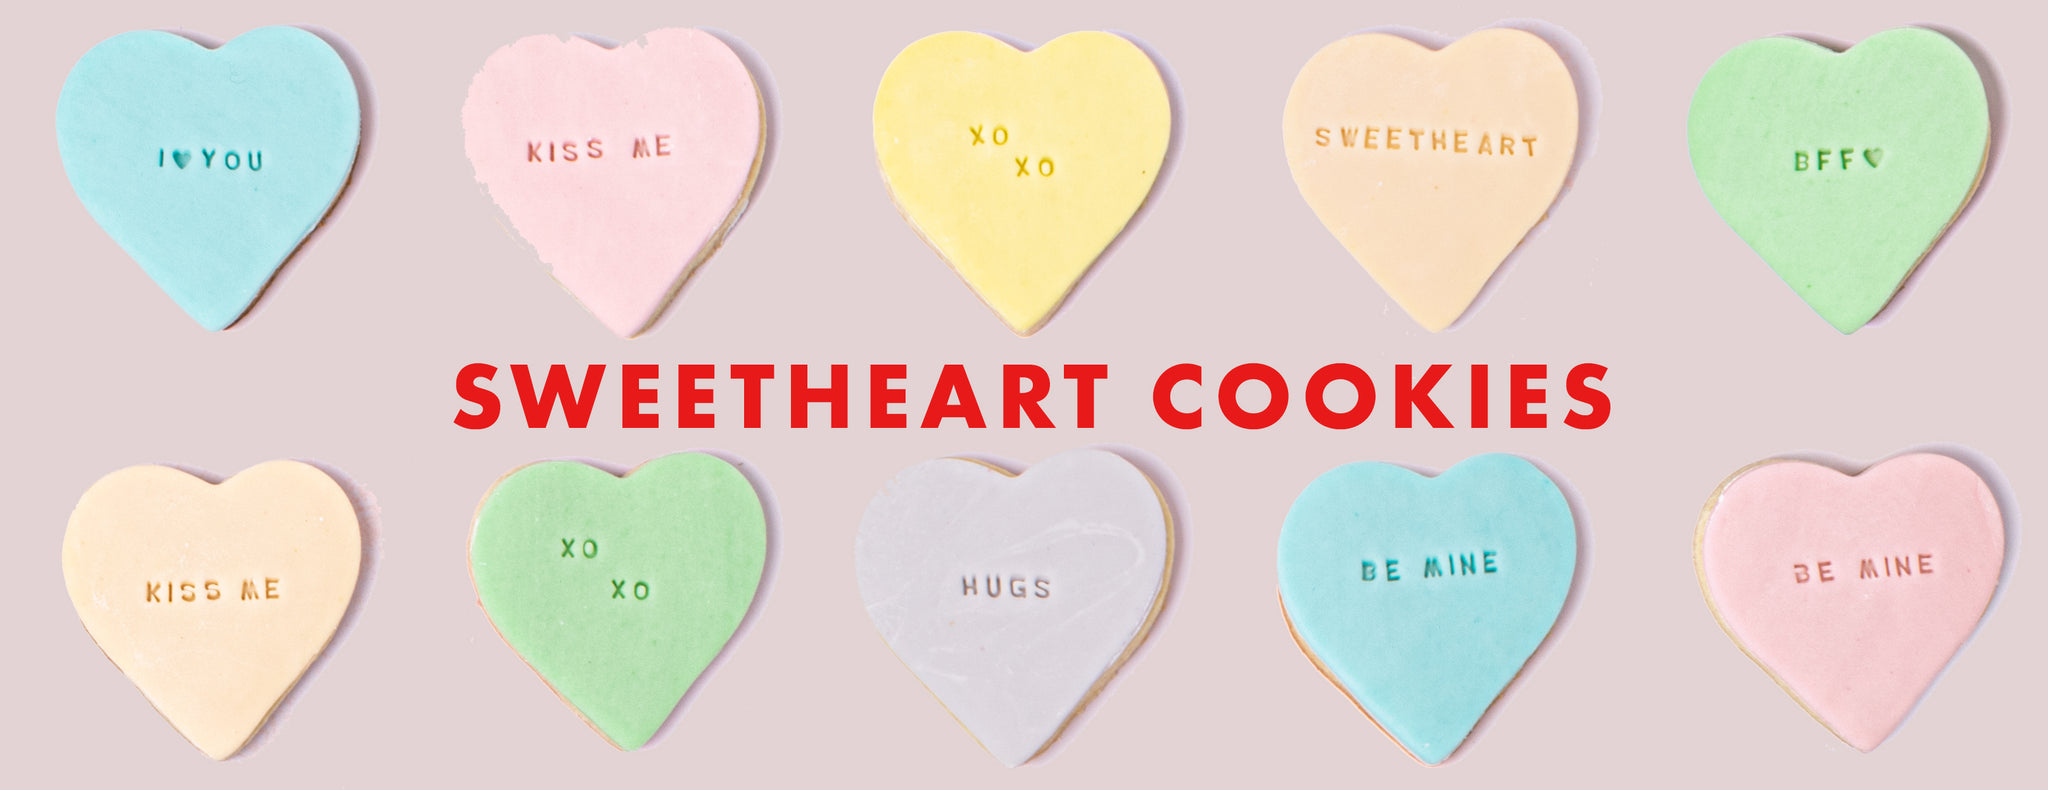 PARTY ET CIE BAKES - SWEETHEART COOKIES